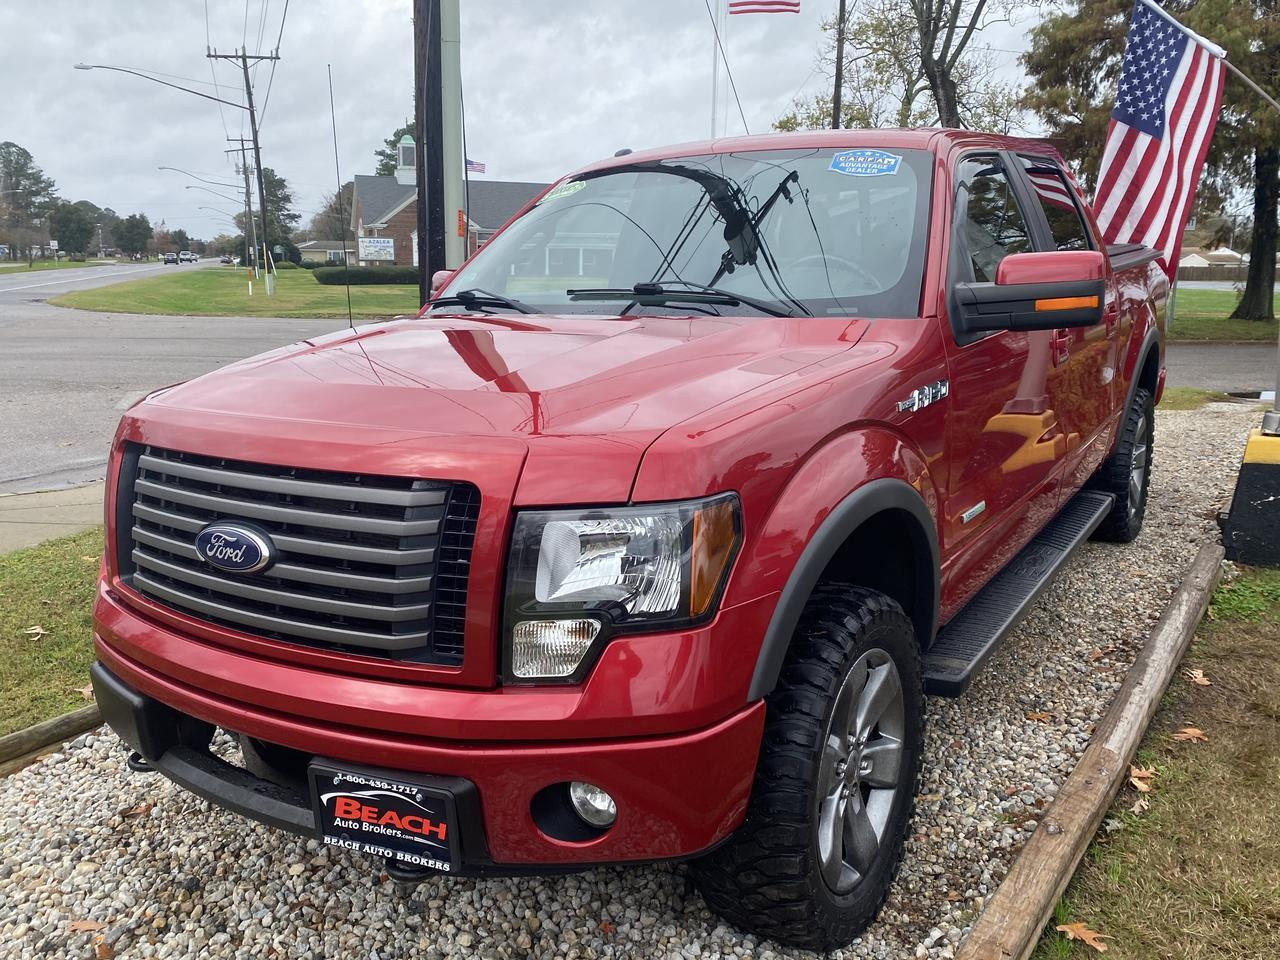 2012 FORD F-150 FX4 SUPERCREW 4X4, WARRANTY, LEATHER, BACKUP CAM, PARKING SENSORS, HEATED/COOLED SEATS, SUNROOF! Norfolk VA